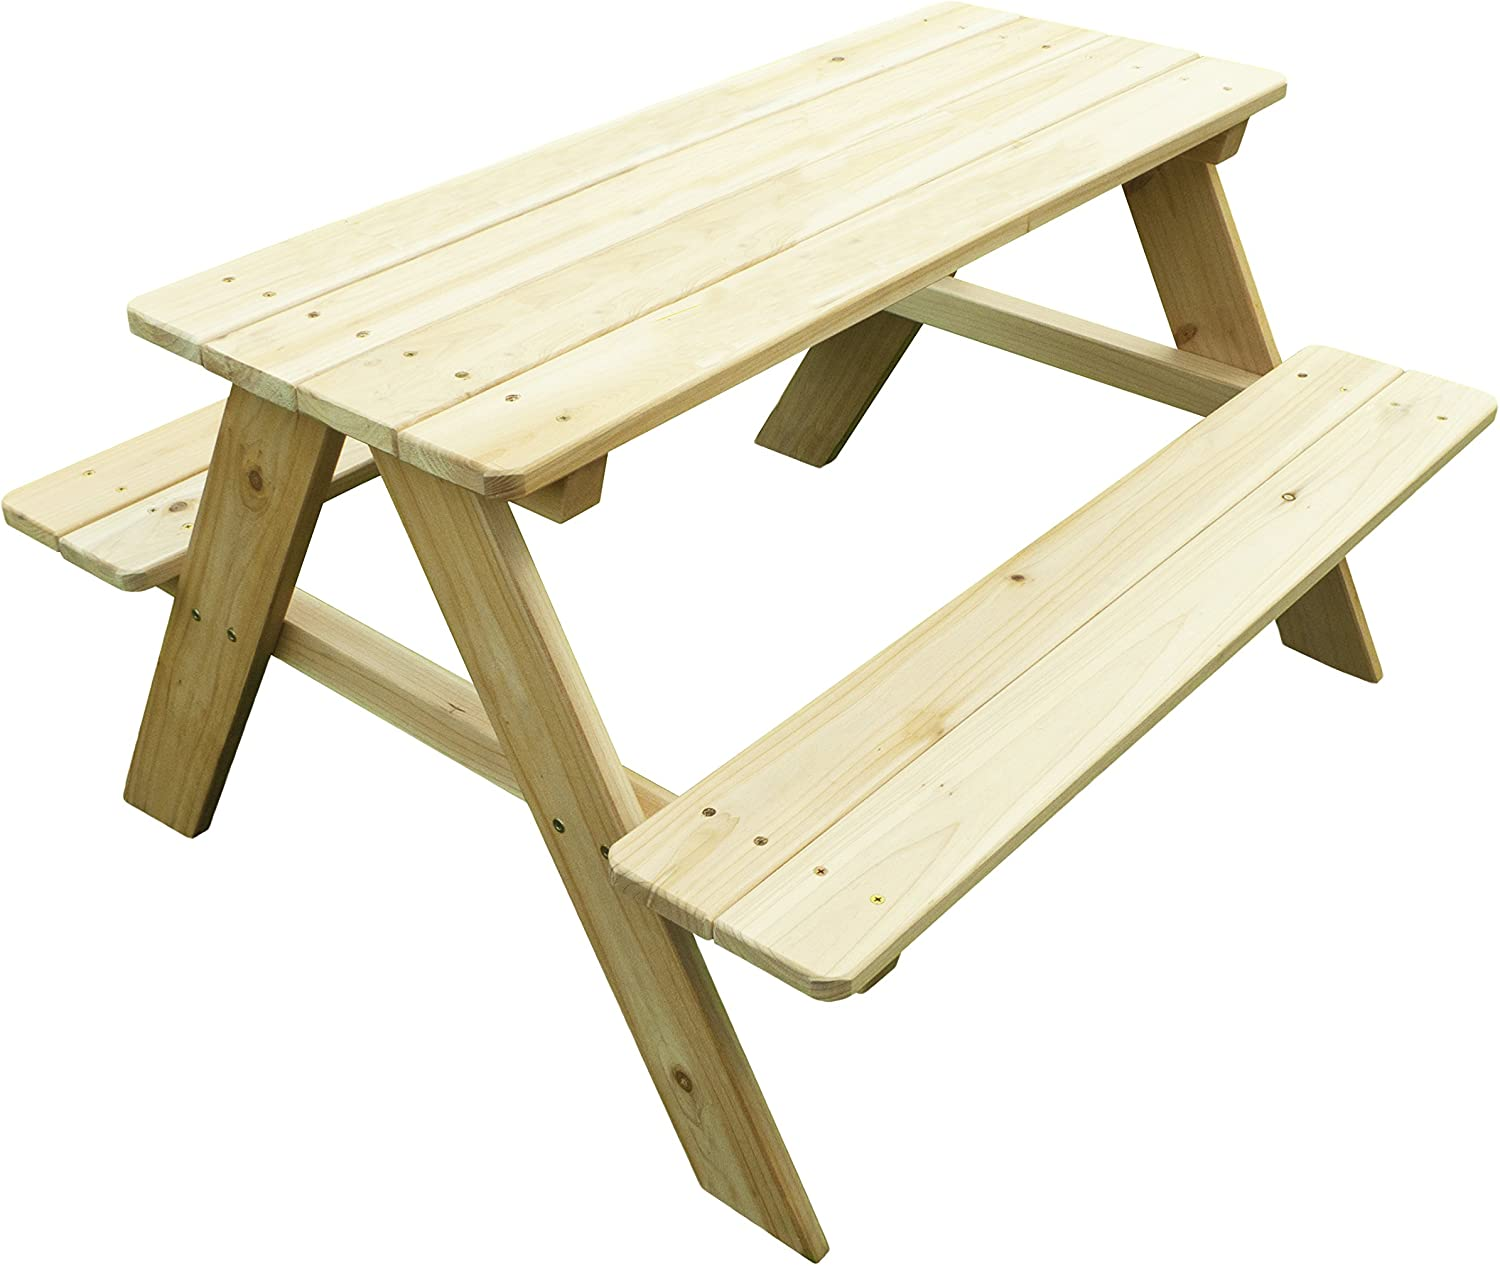 Merry Garden Kids Wooden Picnic Bench Outdoor Patio Dining Table, Natural : Outdoor Benches : Garden & Outdoor